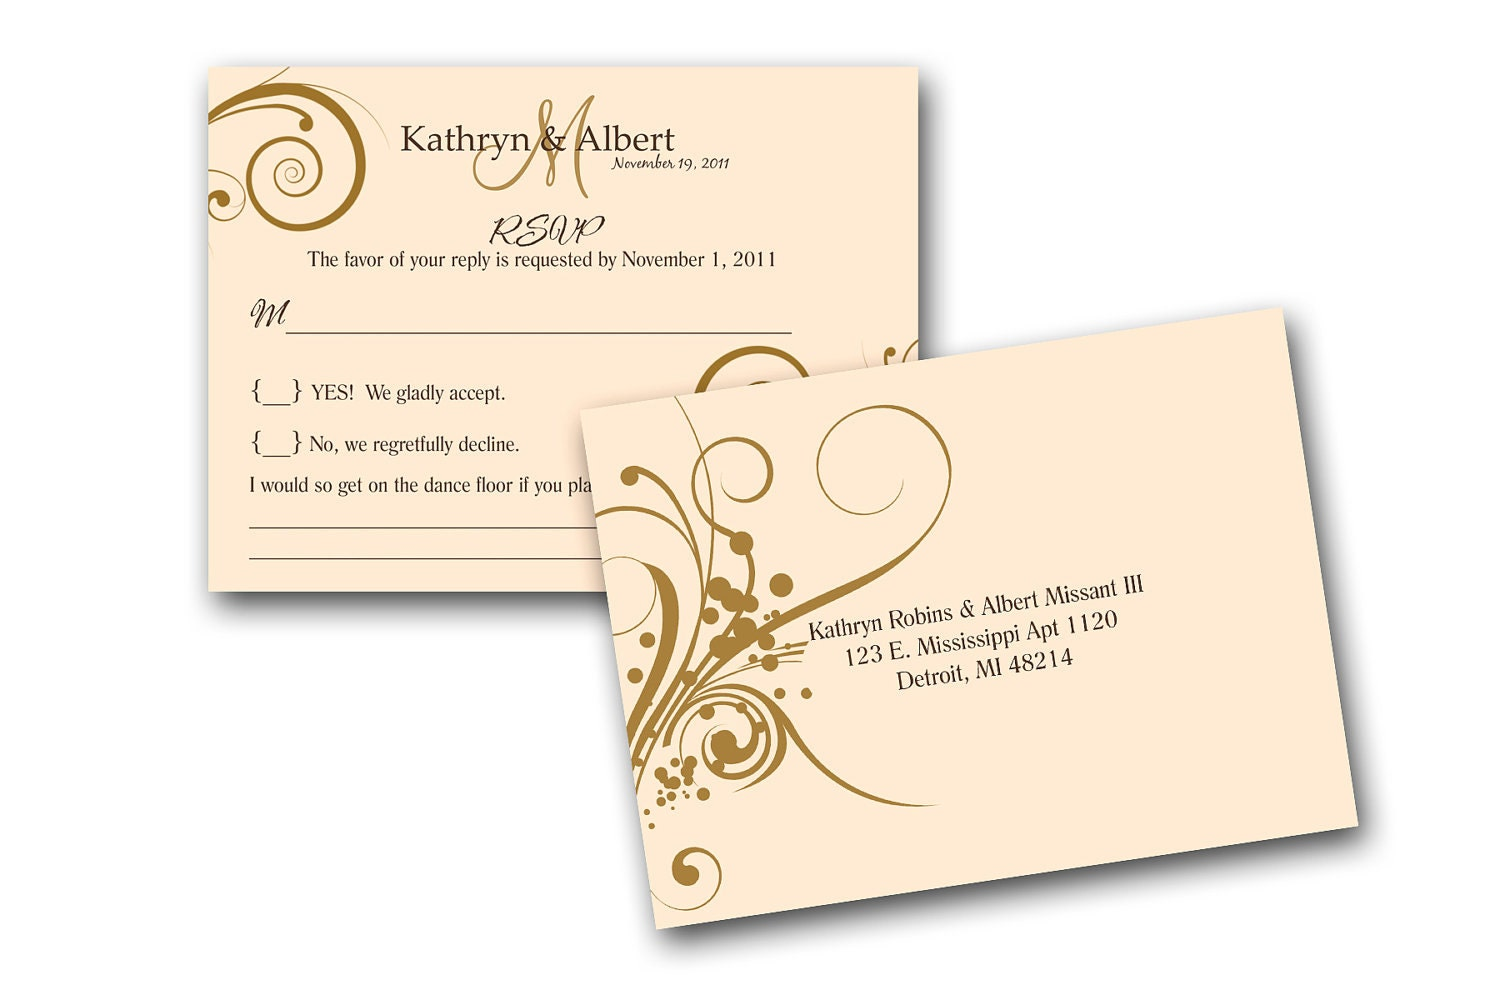 sample rsvp wedding cards - Daway.dabrowa.co